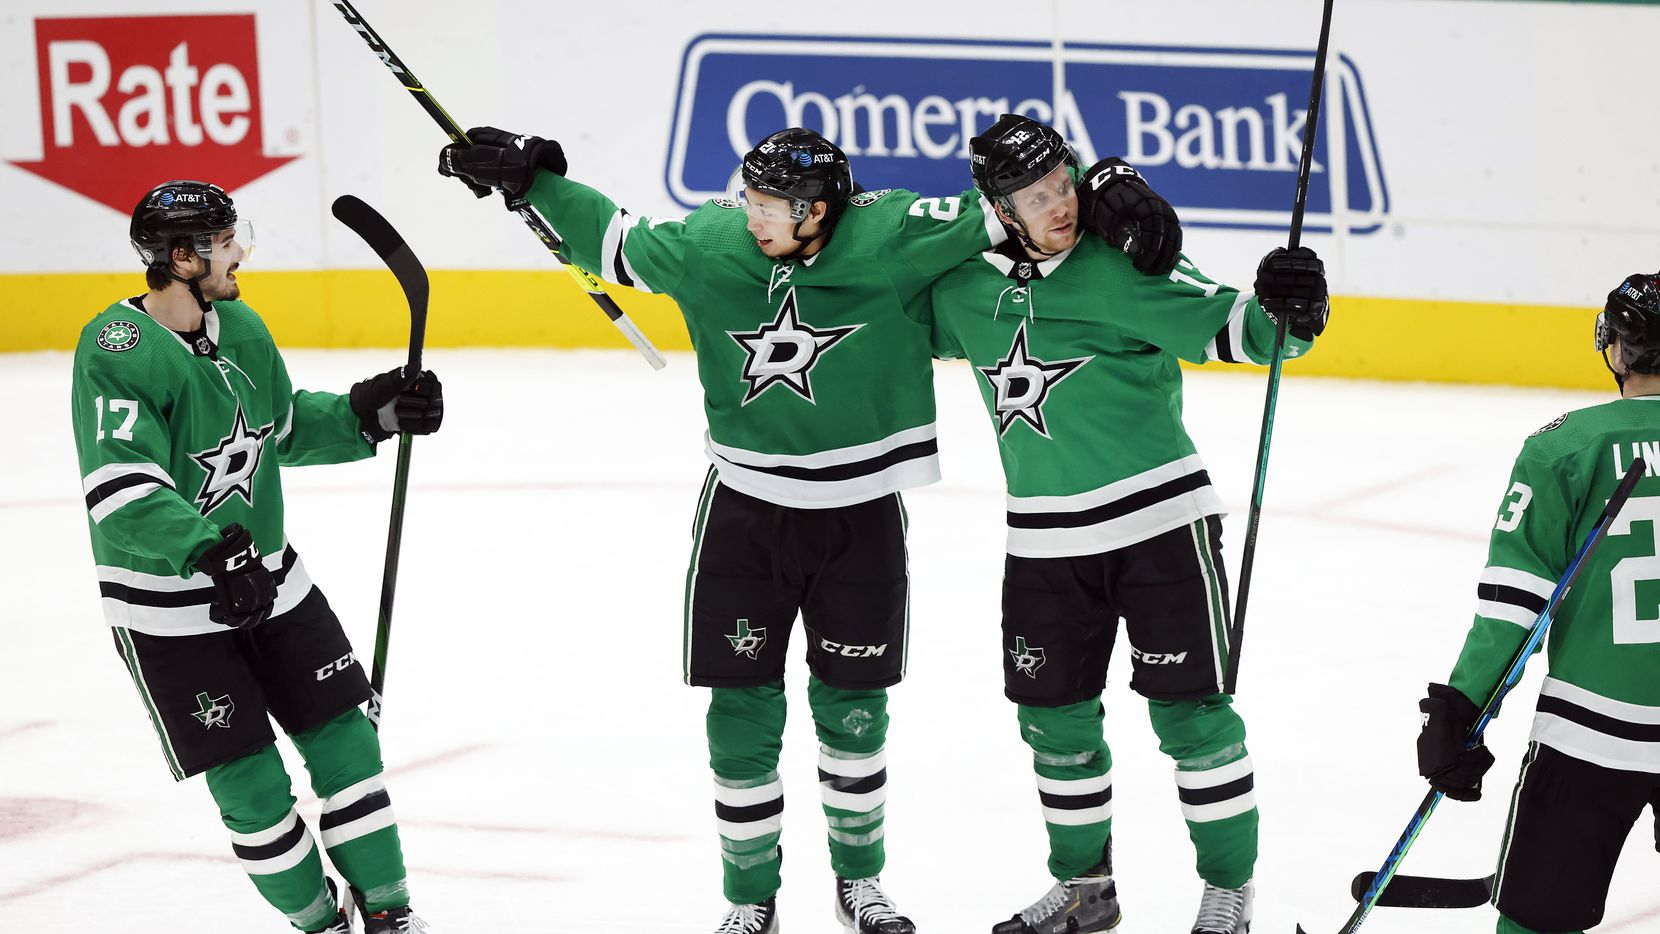 Dallas Stars left wing Jason Robertson (21) is congratulated by his teammates after scoring a third period goal against the Columbus Blue Jackets at the American Airlines Center in Dallas, Thursday, March 4, 2021. The Stars fell though to the Blue Jackets, 3-2.